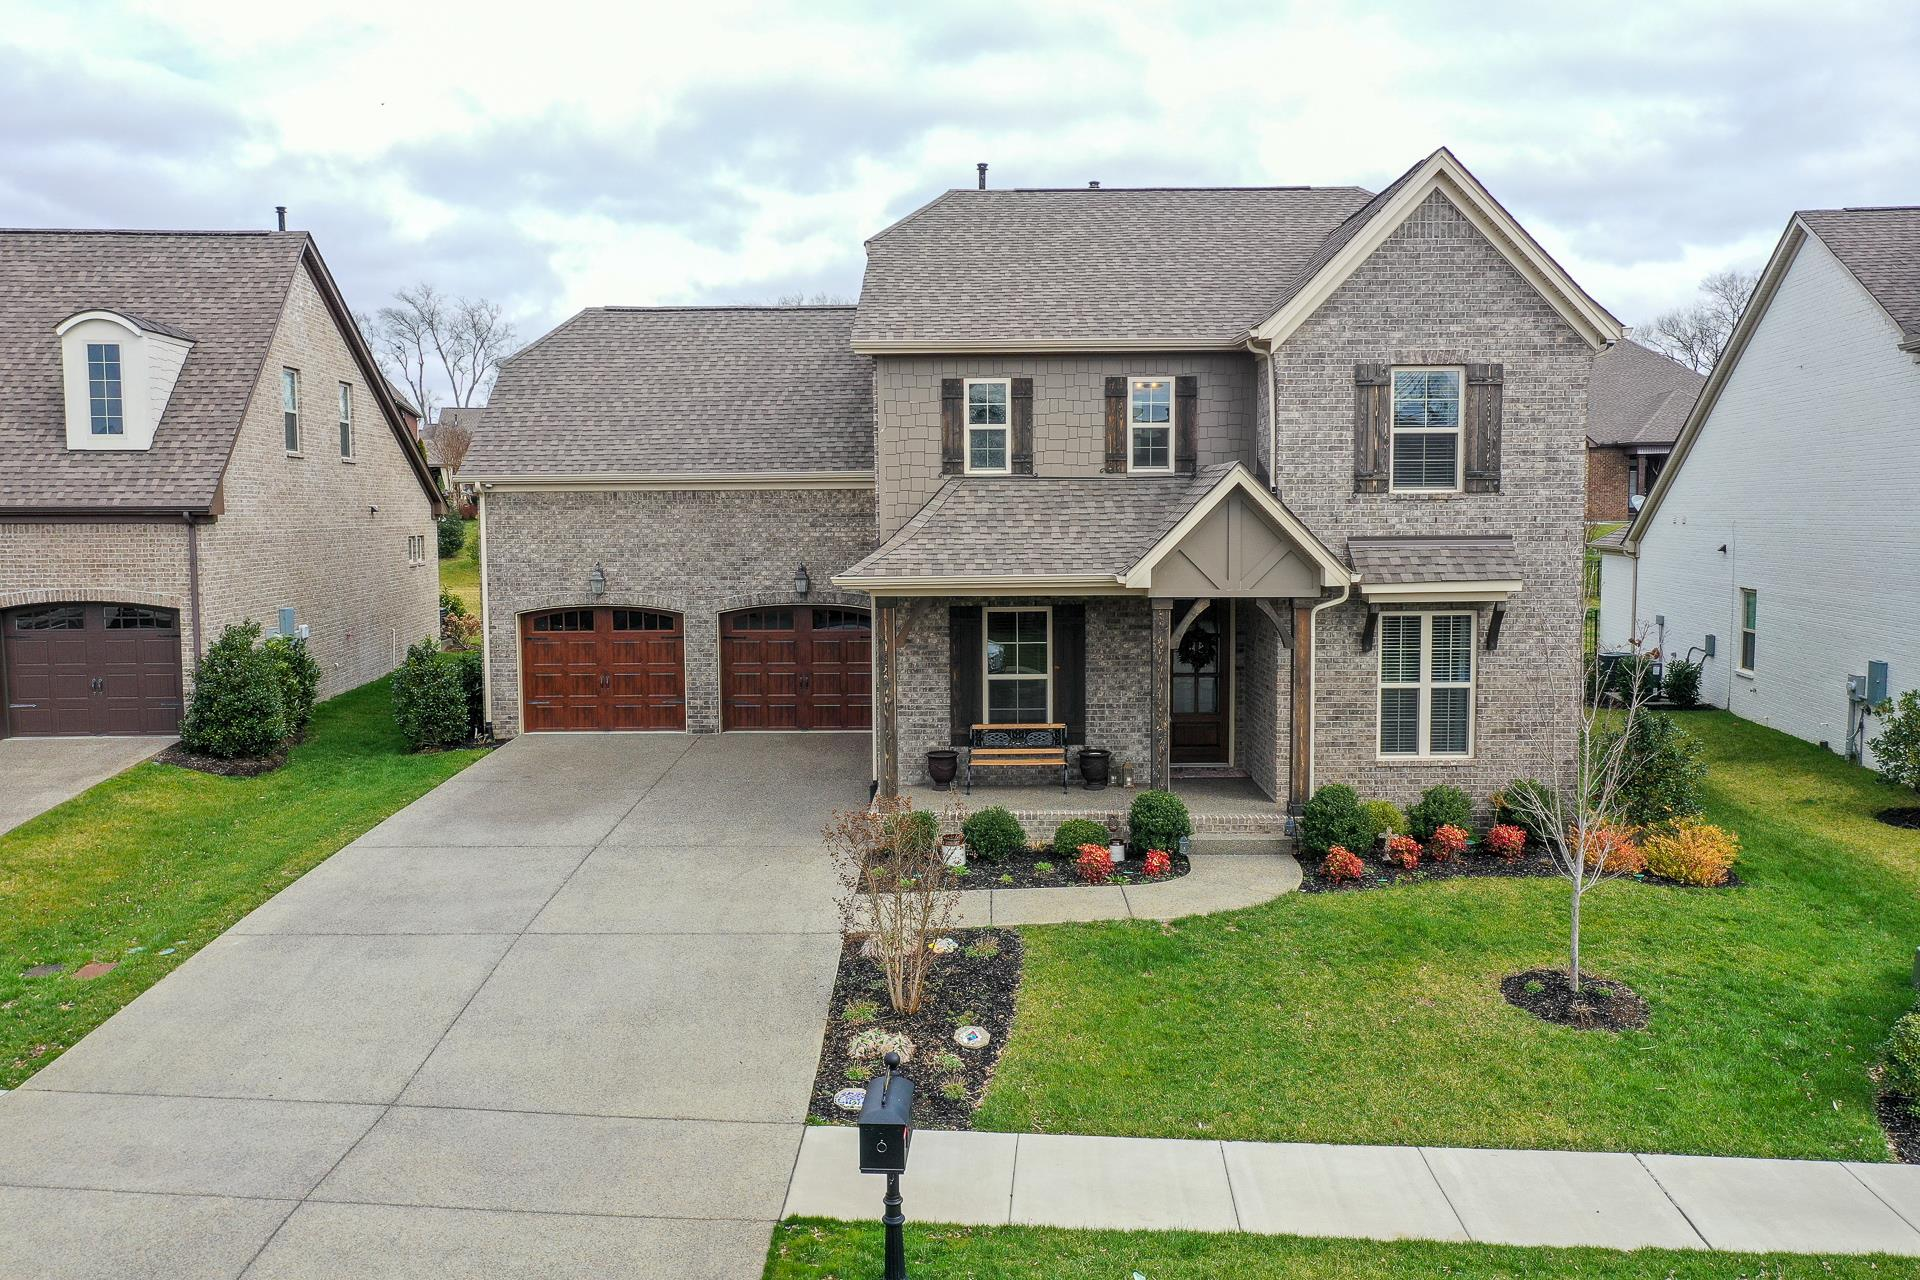 1046 Laffite Way 37066 - One of Gallatin Homes for Sale